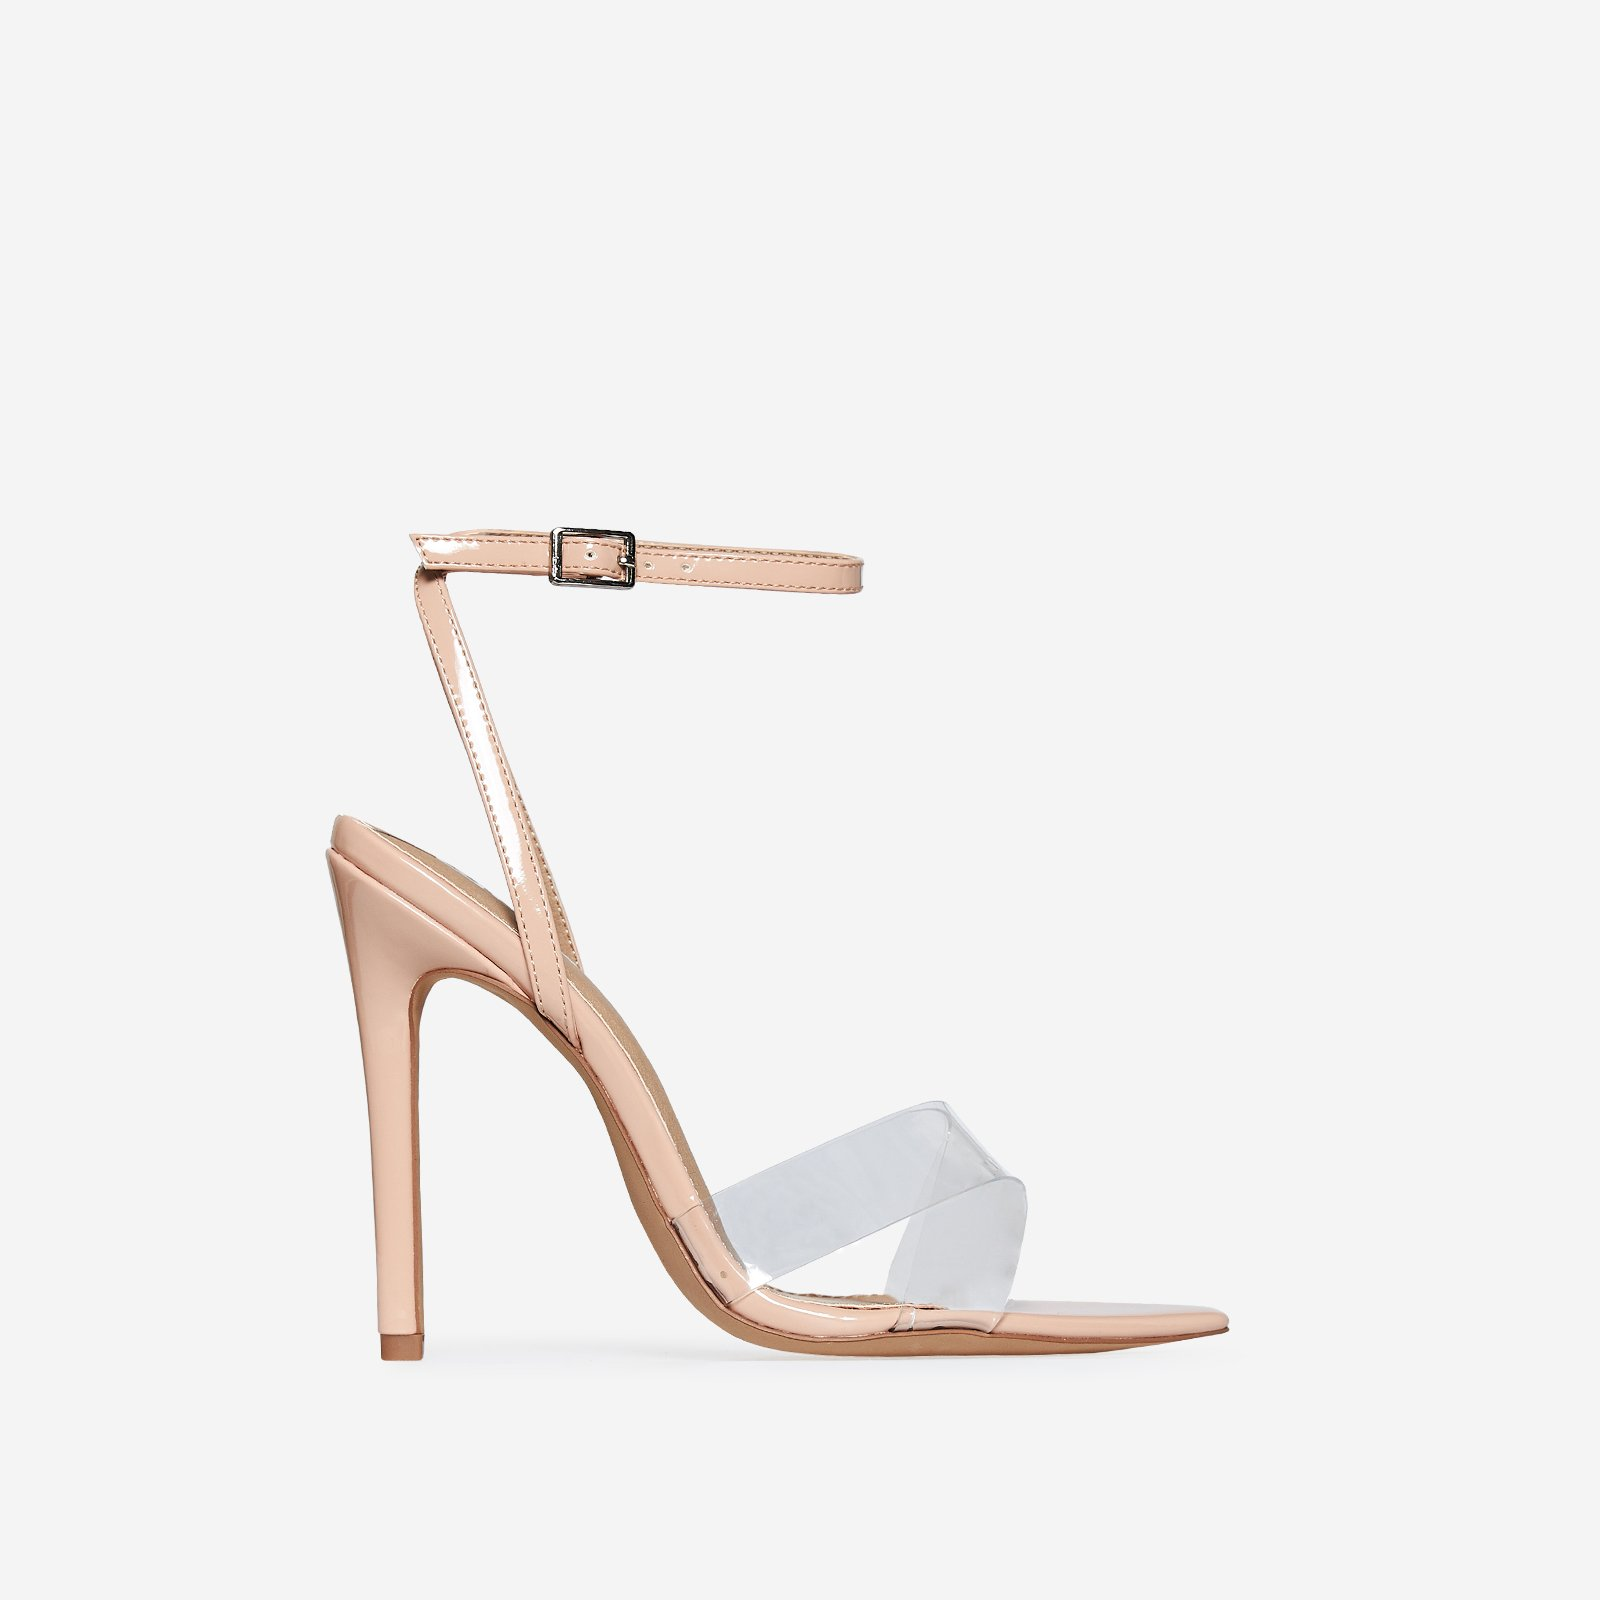 Celia Perspex Pointed Toe Barely There Heel In Nude Patent